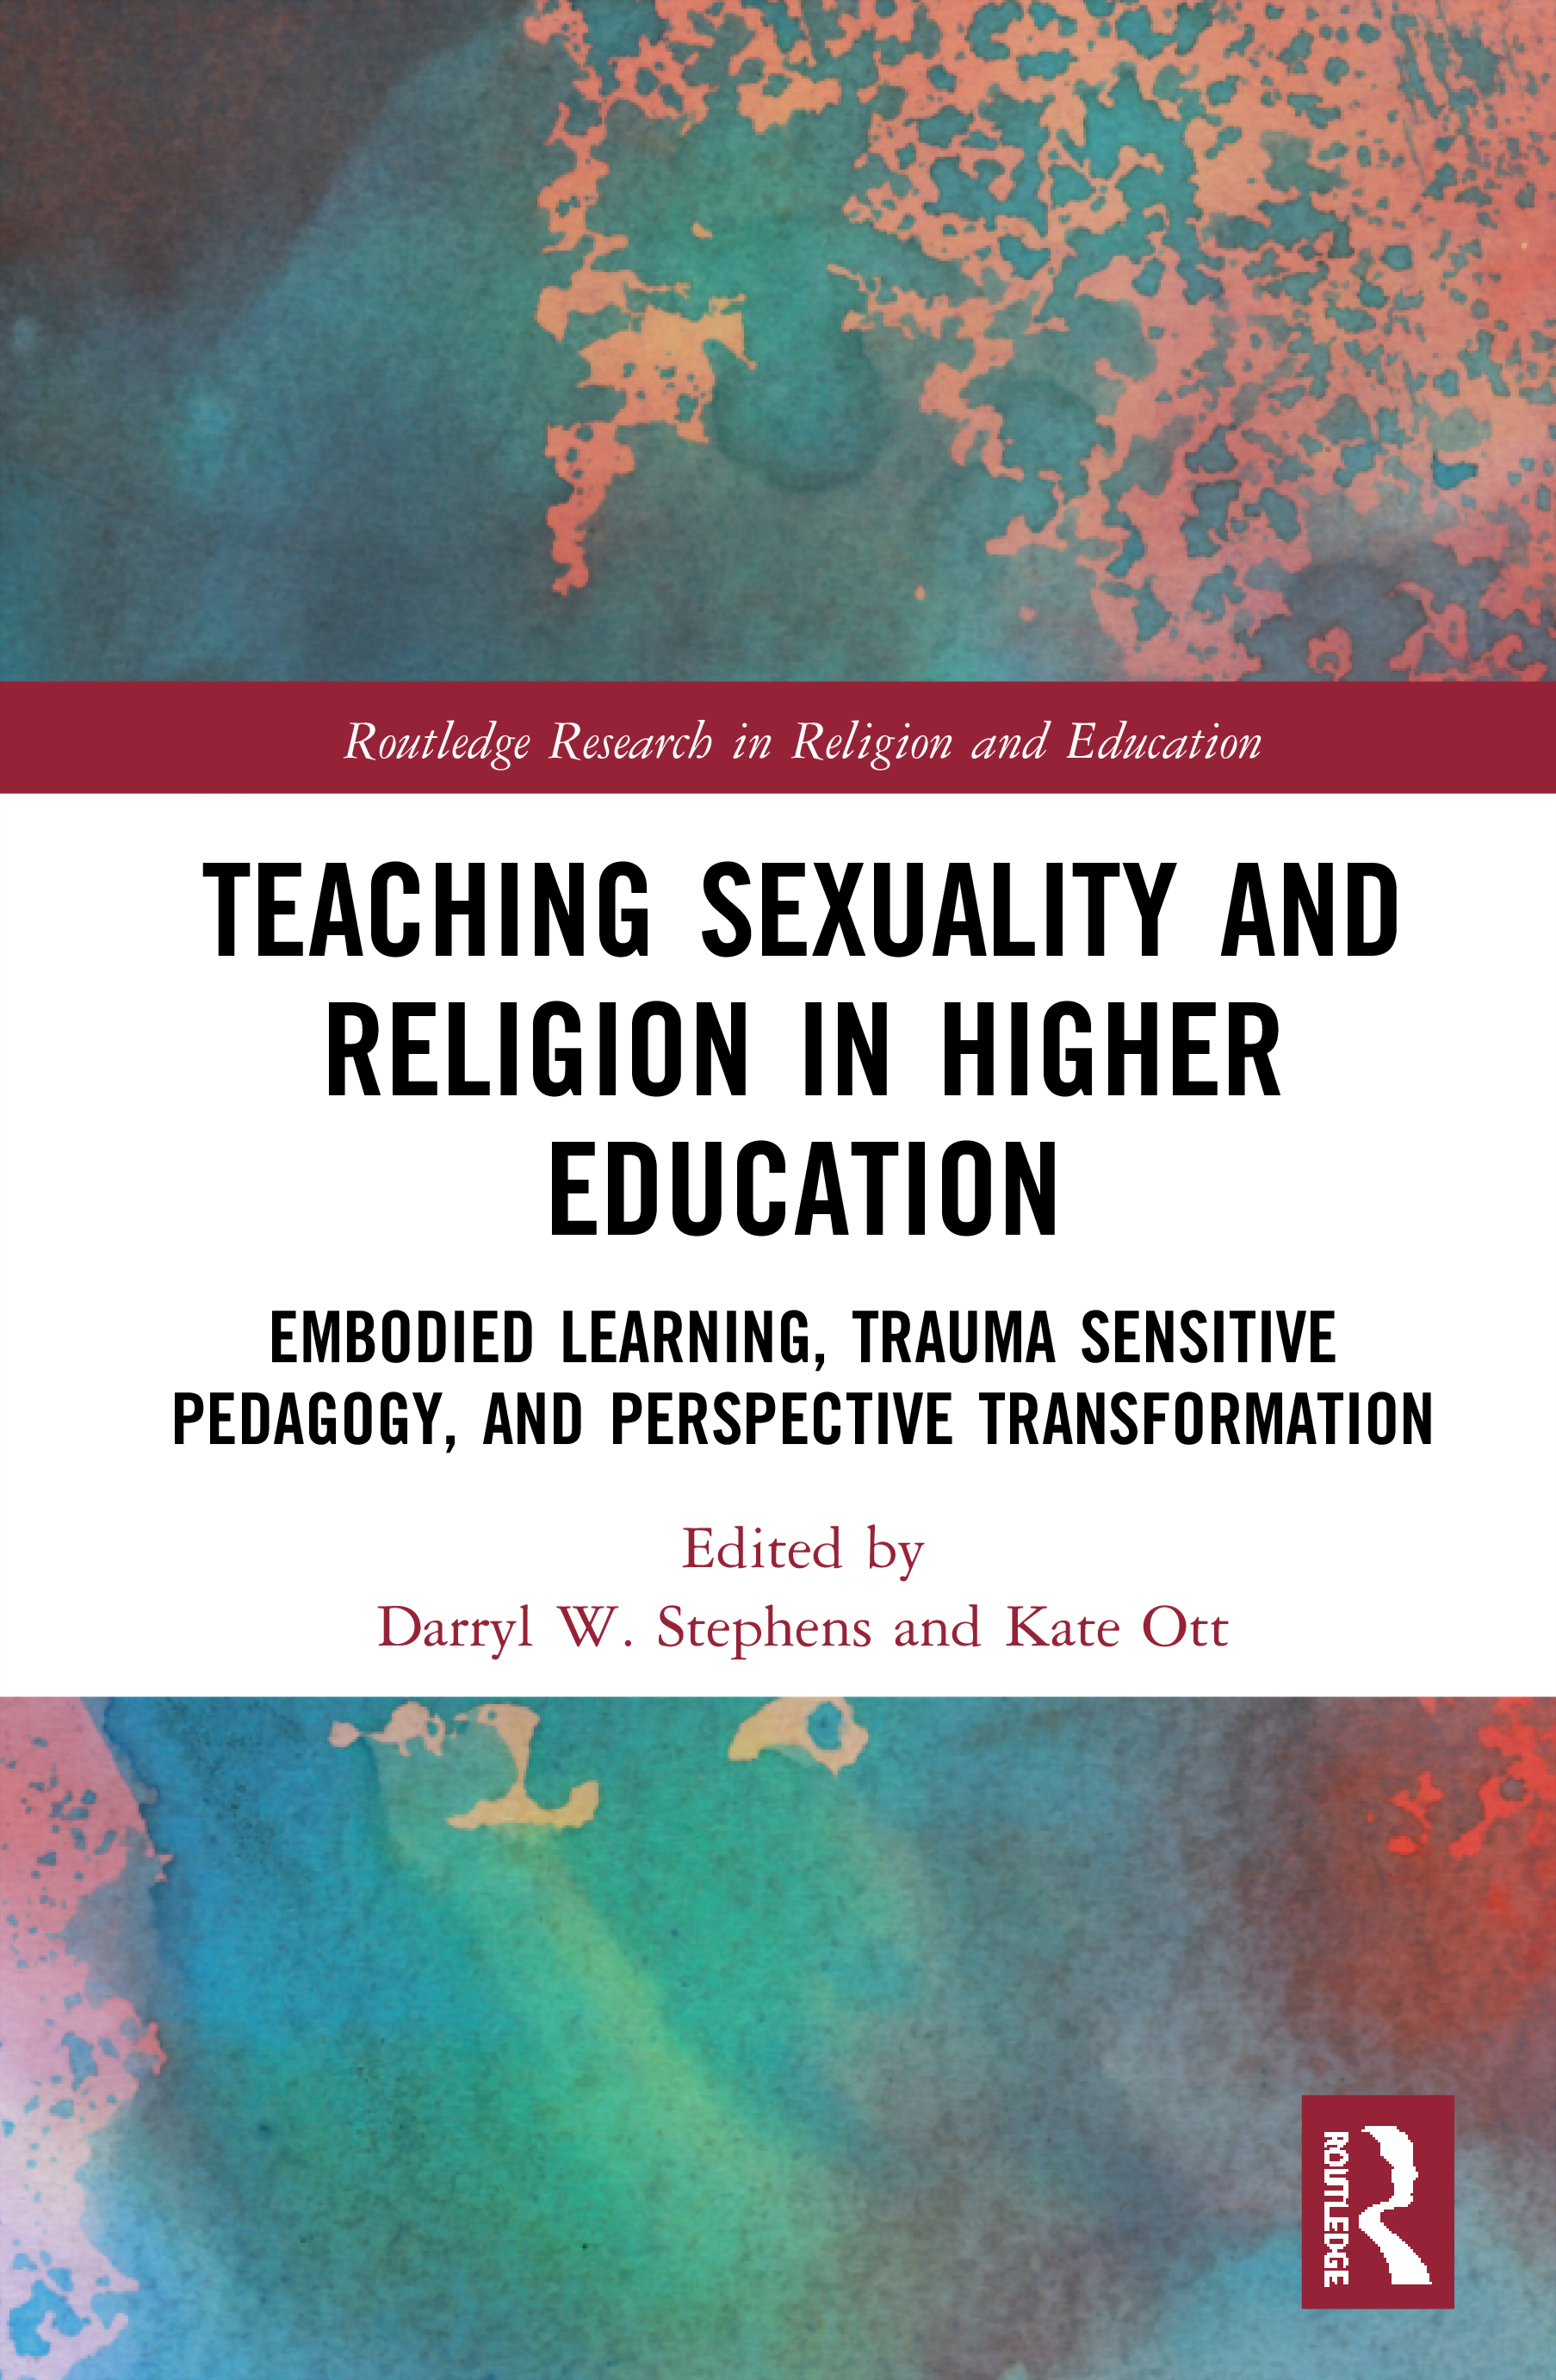 Teaching Sexuality and Religion in Higher Education: Embodied Learning, Trauma Sensitive Pedagogy, and Perspective Transformation, 1st Edition (Hardback) book cover